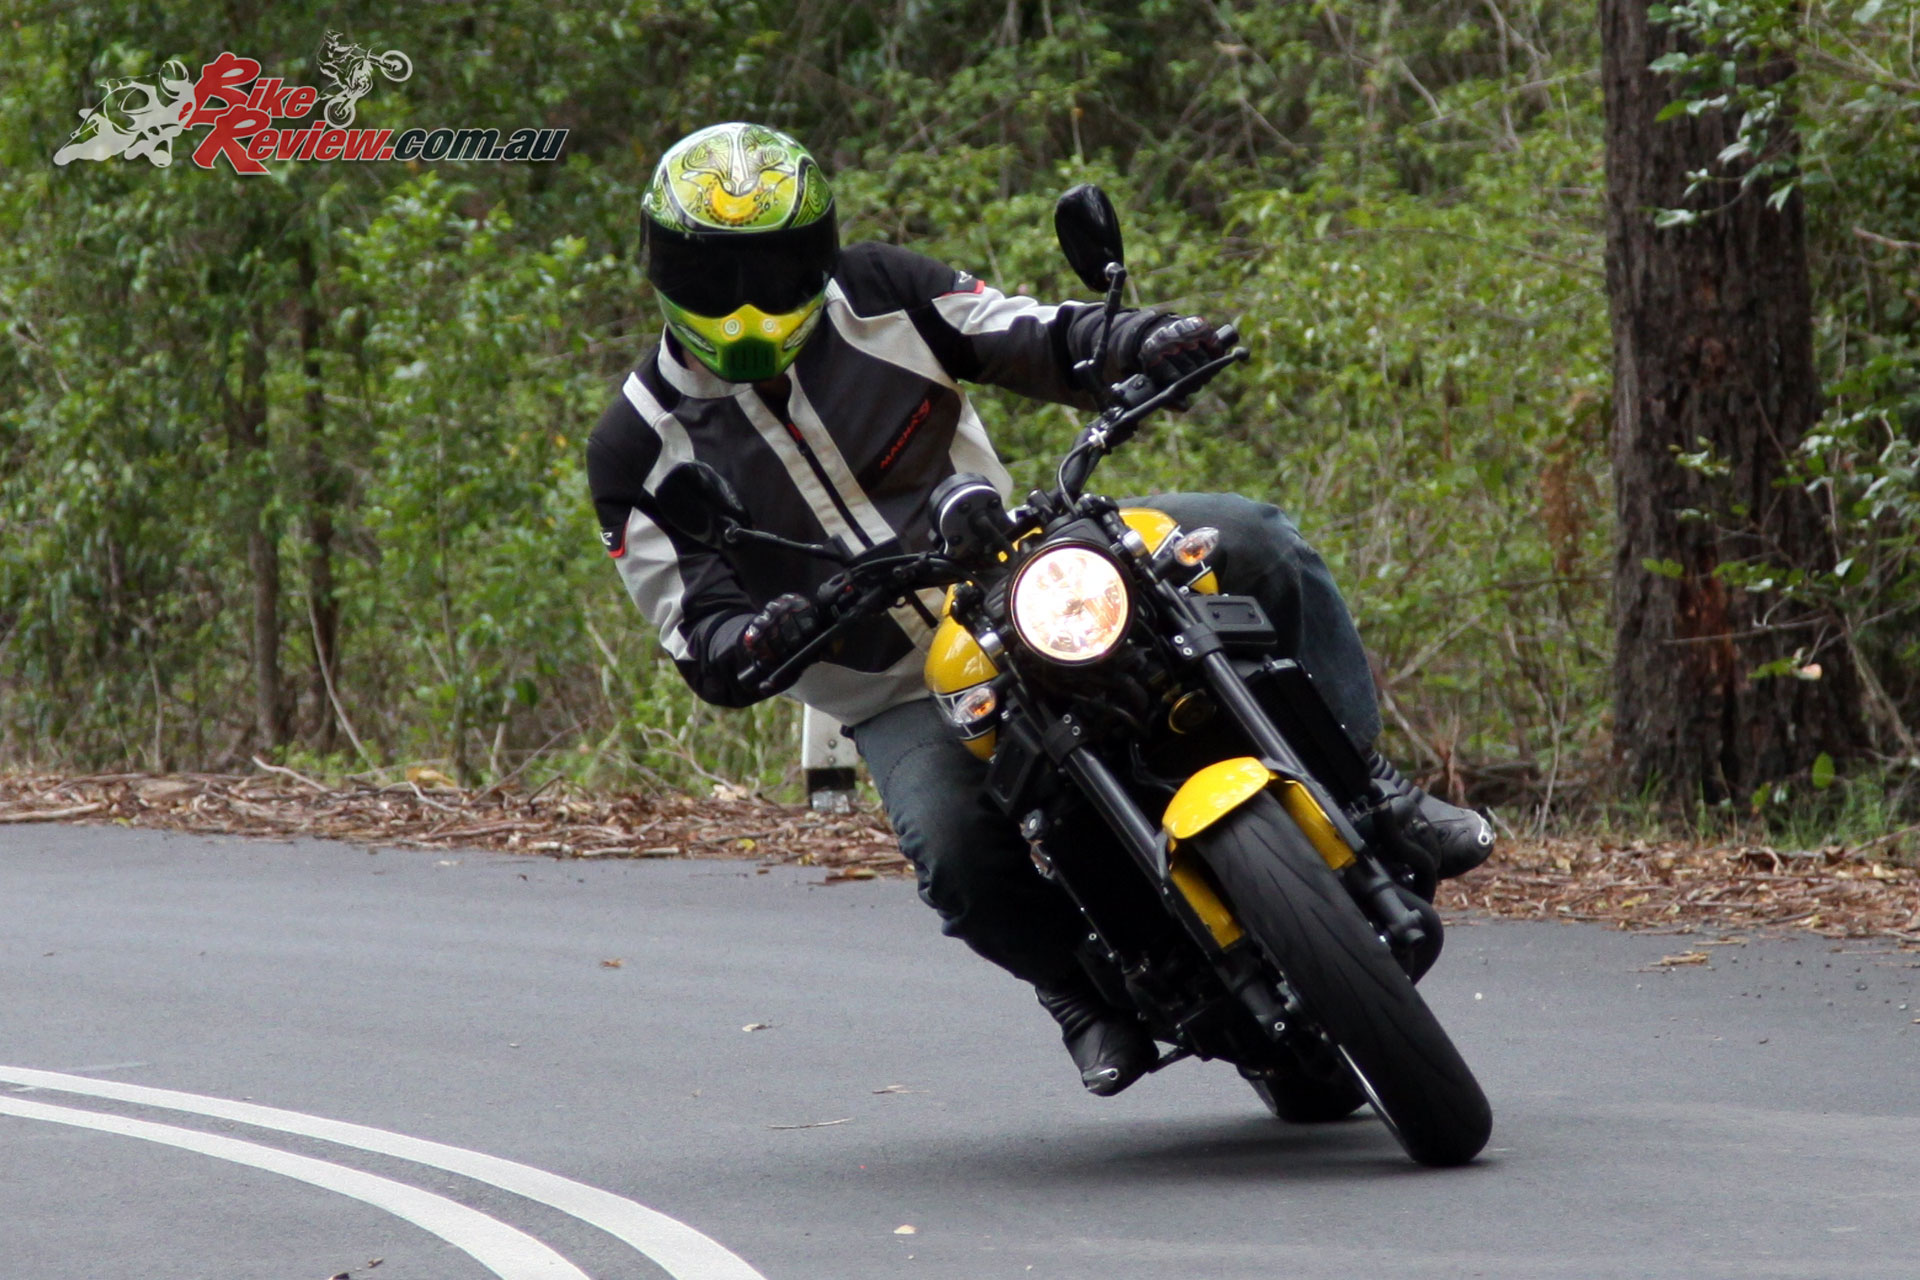 Drive out of corners on the XSR900 is what really puts a smile on your face